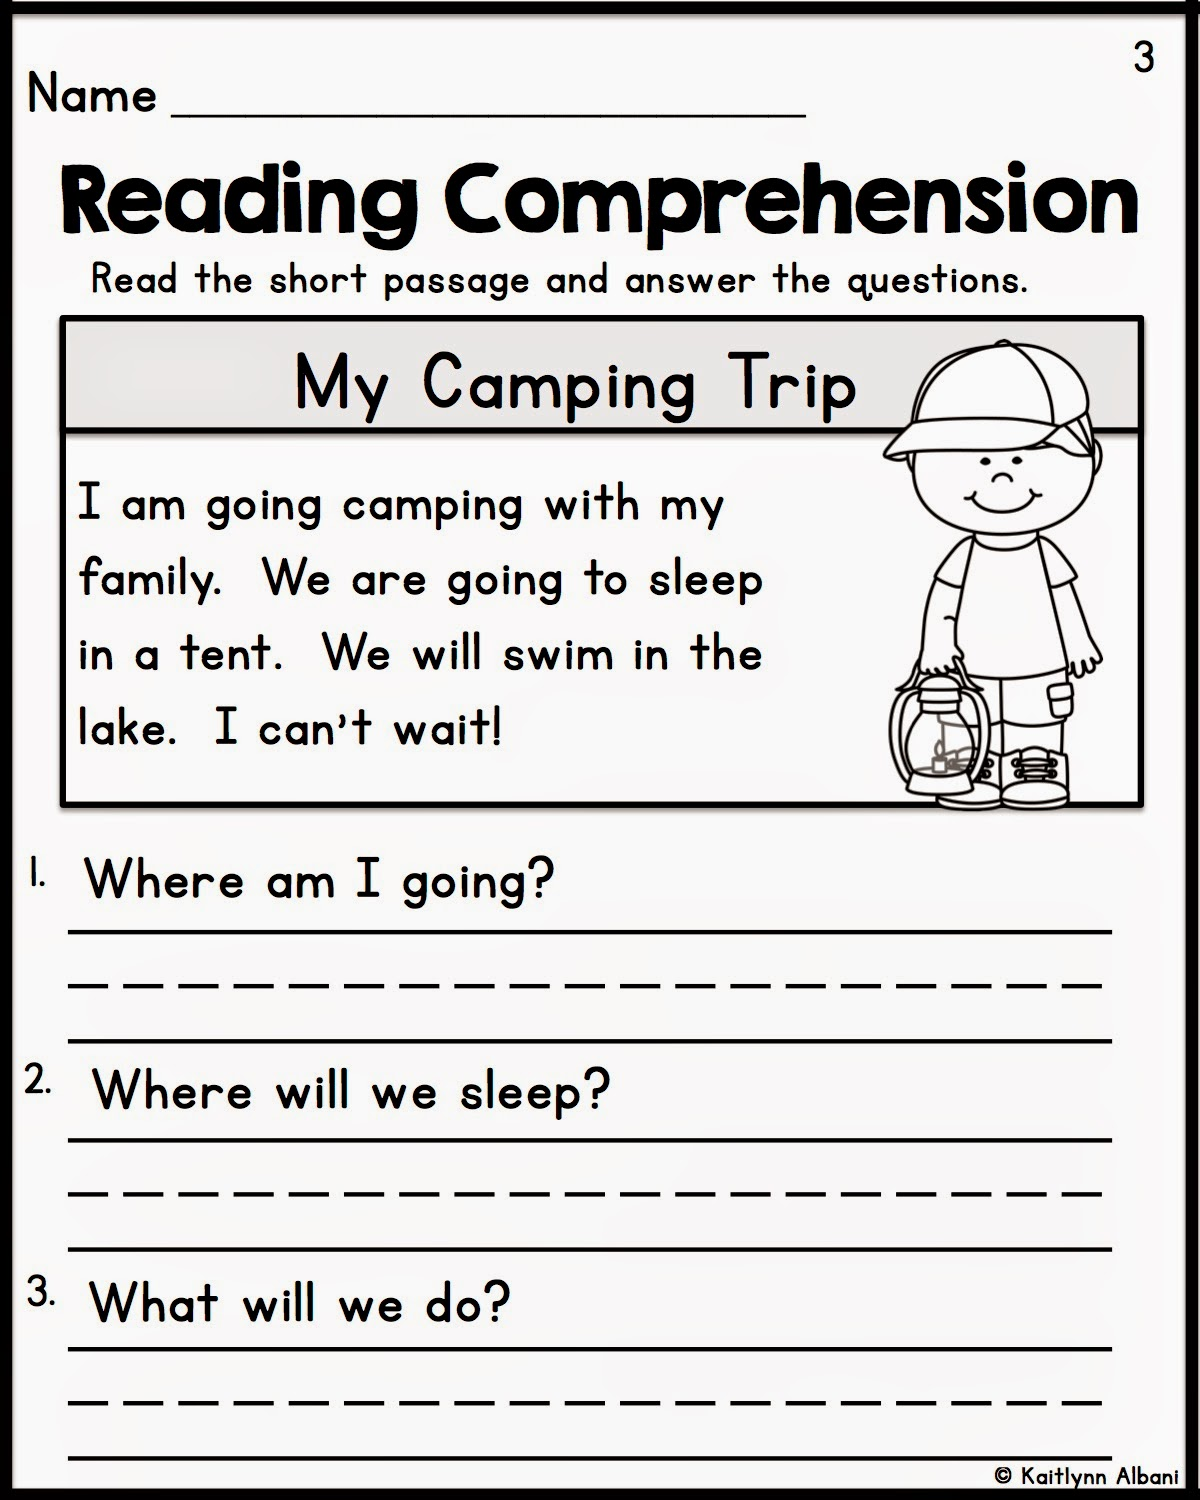 Worksheet 1 Grade Reading worksheet 1 grade reading mikyu free worksheets best comprehension printable exercises